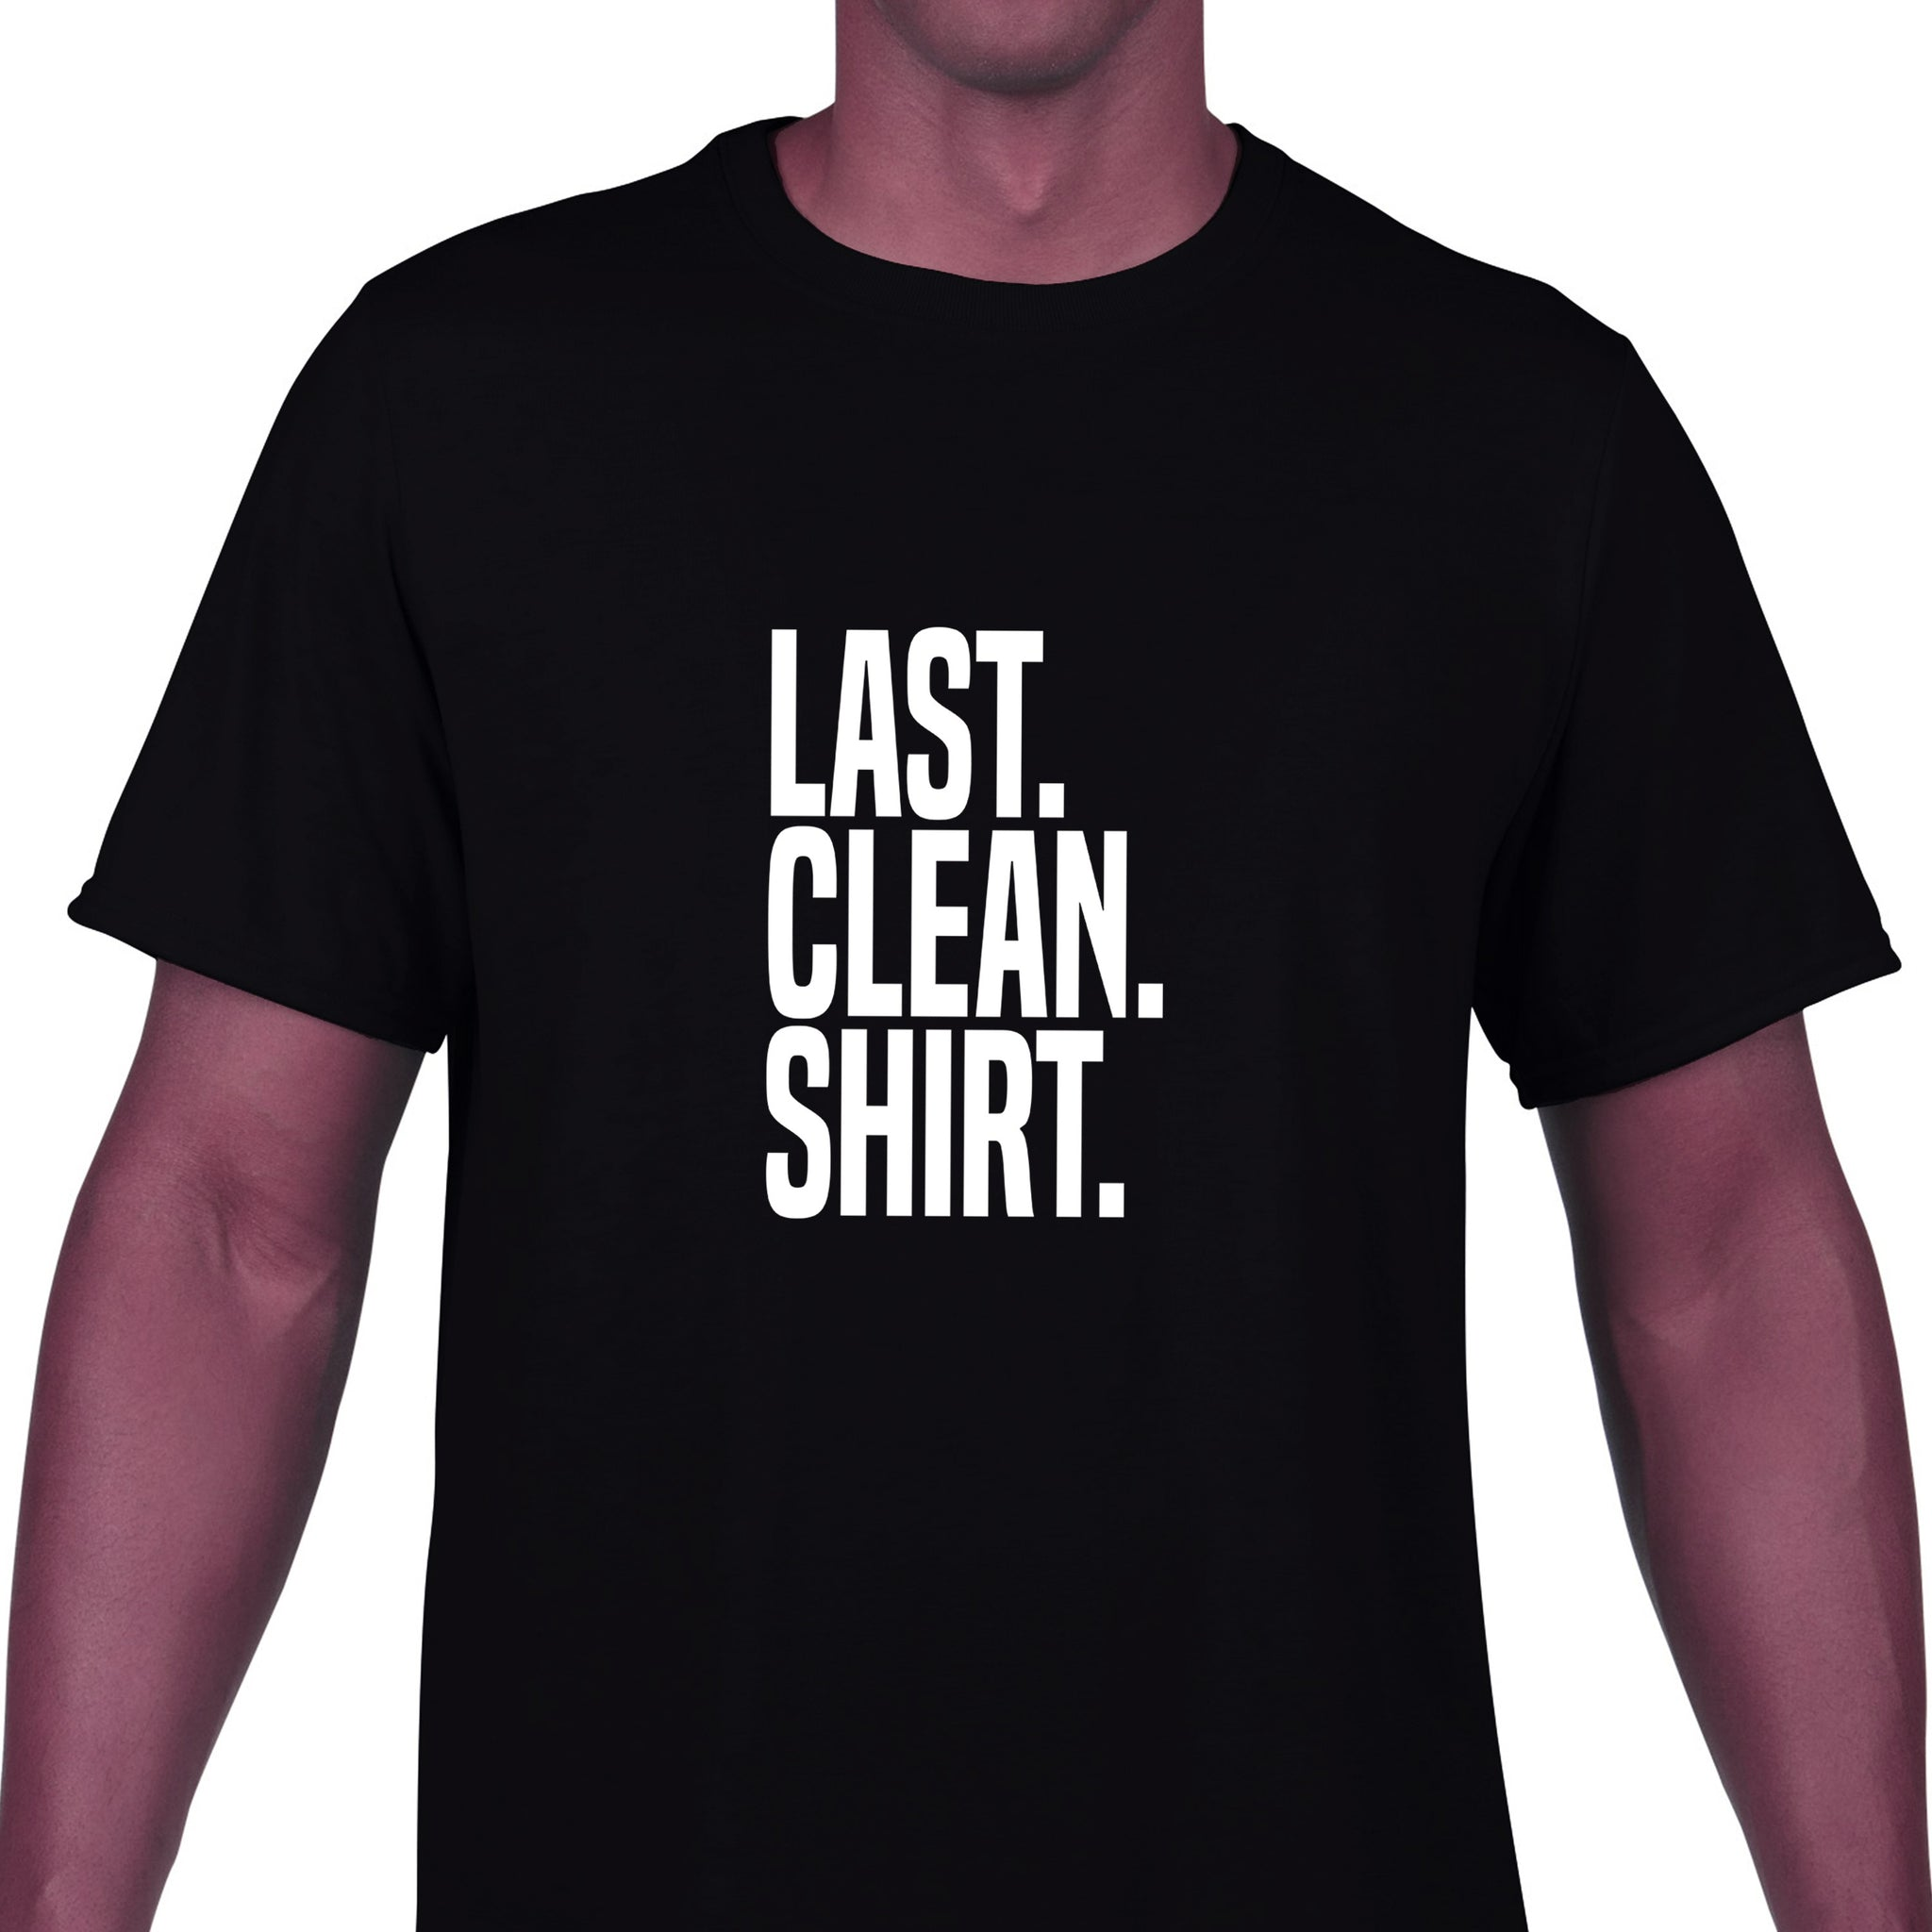 Last Clean Shirt T-shirt for Men - Let's Beach